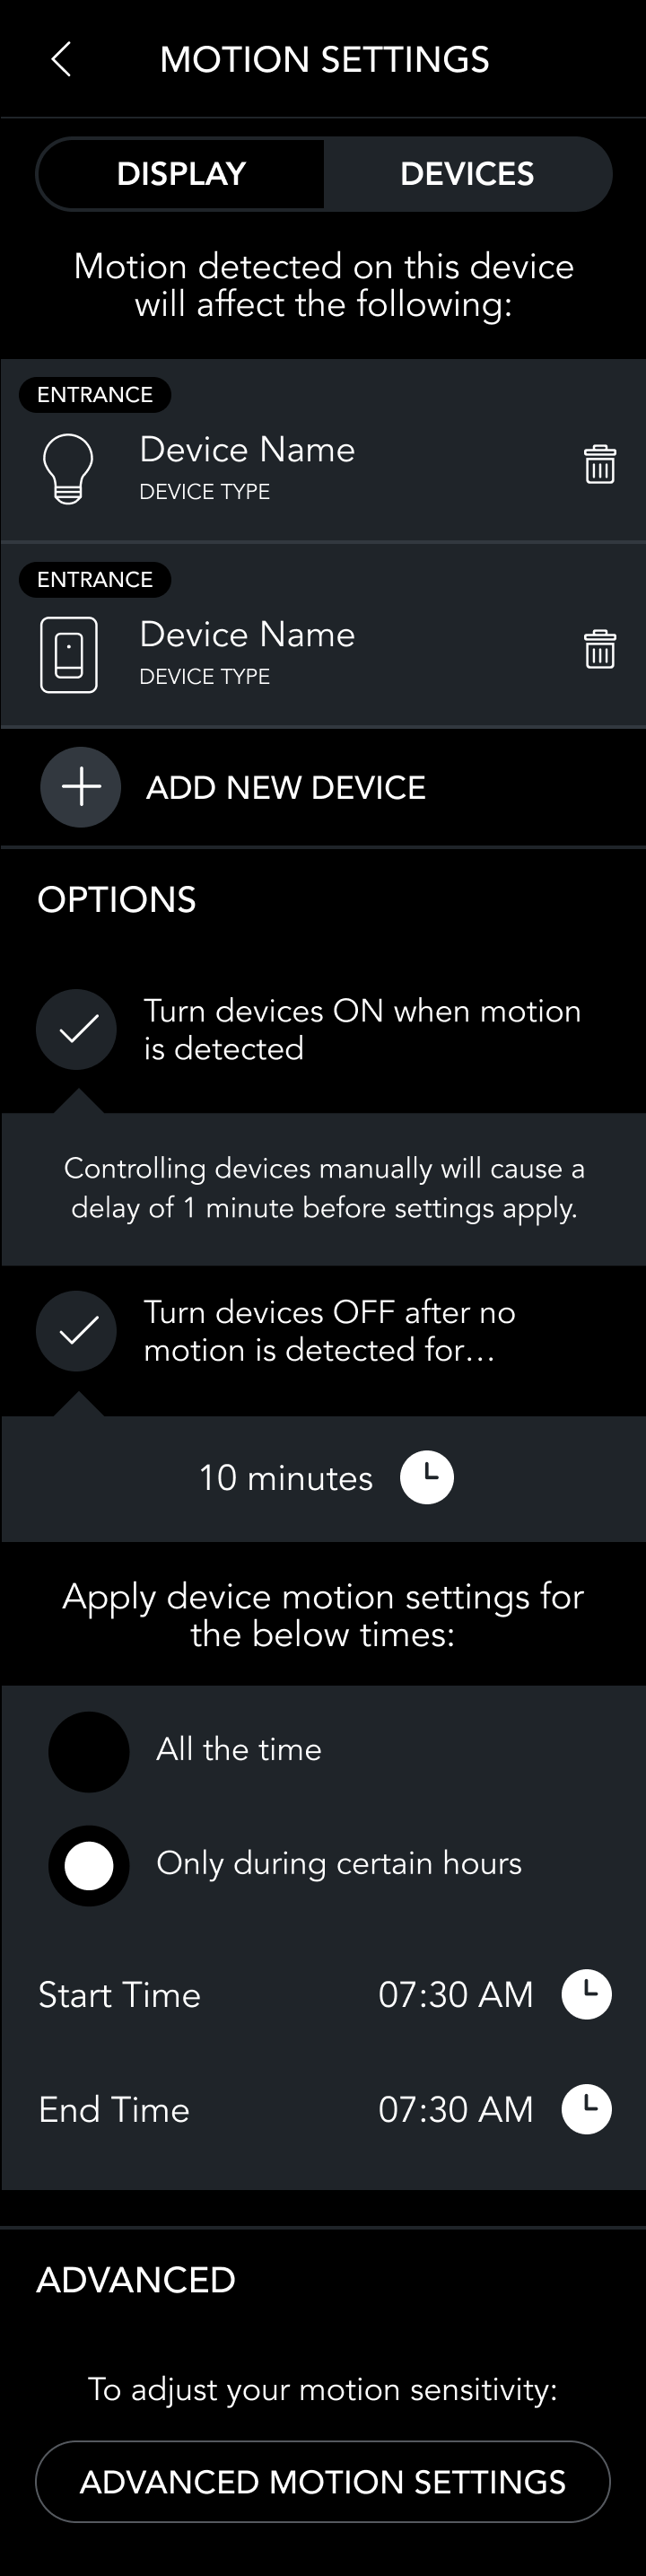 Settings_-_Motion_-_with_Devices_and_Times_-_Quick_Fix.png